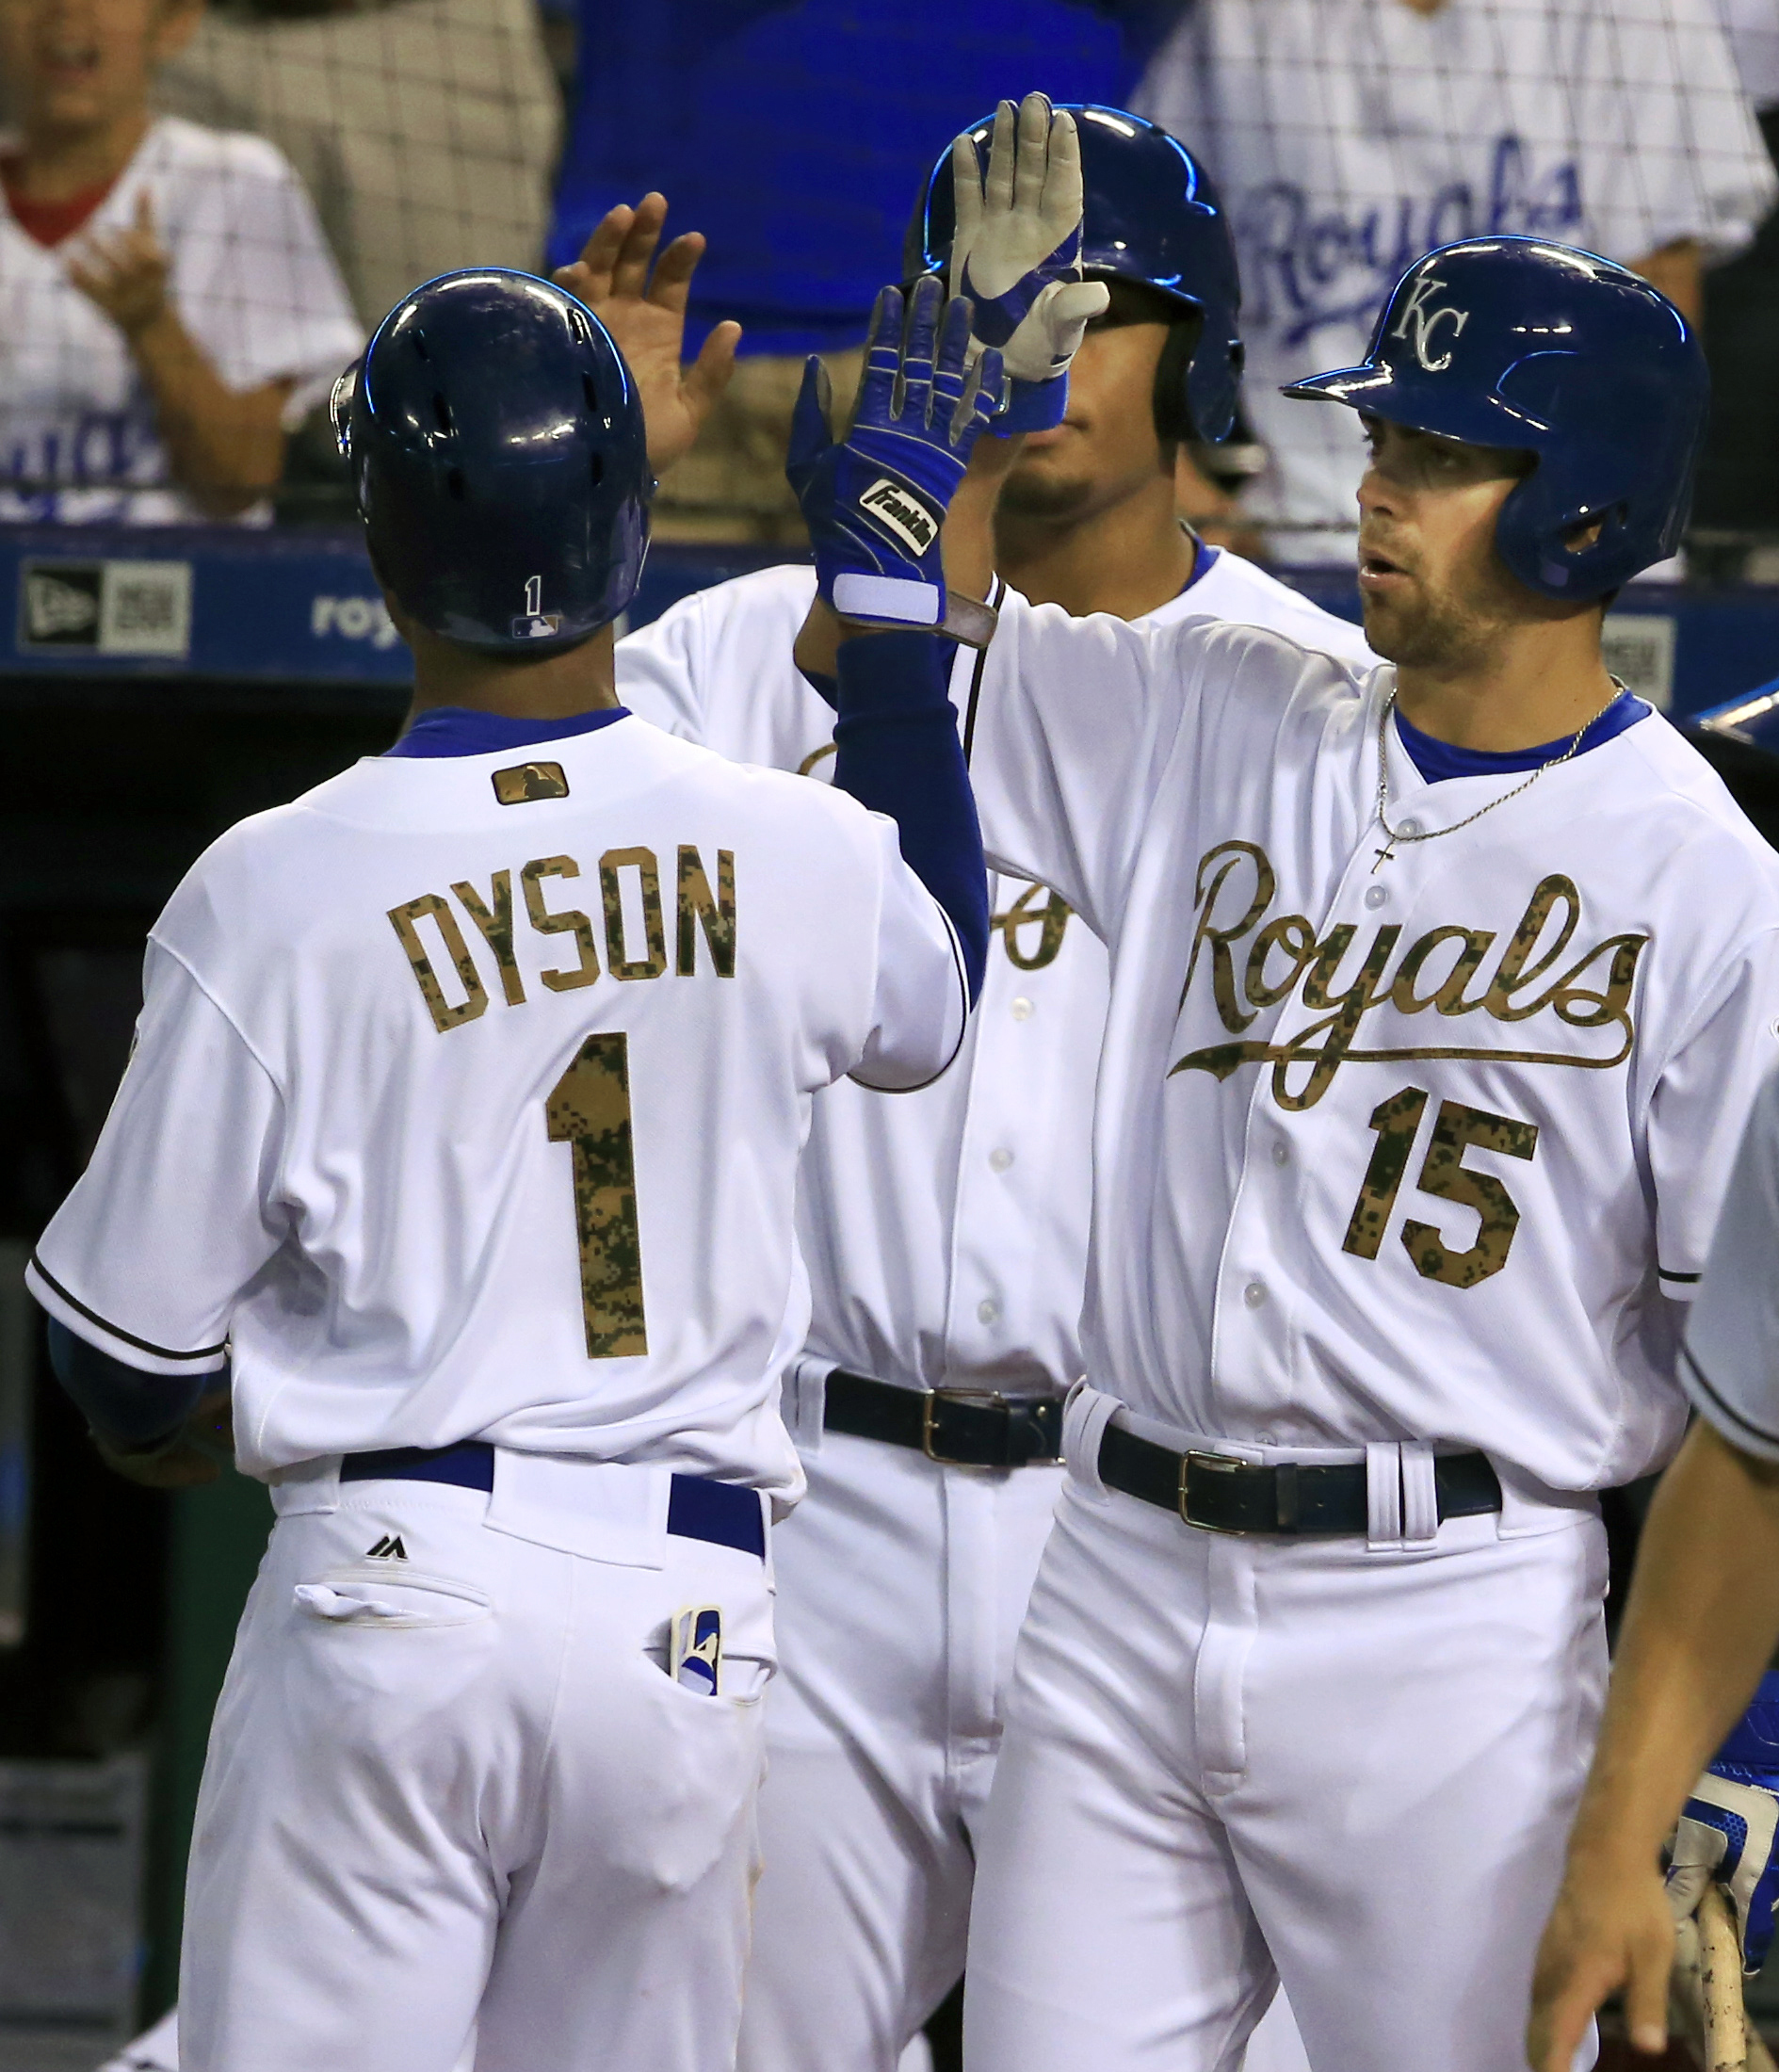 Kansas City Royals' Jarrod Dyson (1) is congratulated by teammate Whit Merrifield (15) after scoring during the fifth inning of a baseball game against the Tampa Bay Rays at Kauffman Stadium in Kansas City, Mo., Monday, May 30, 2016. (AP Photo/Orlin Wagne